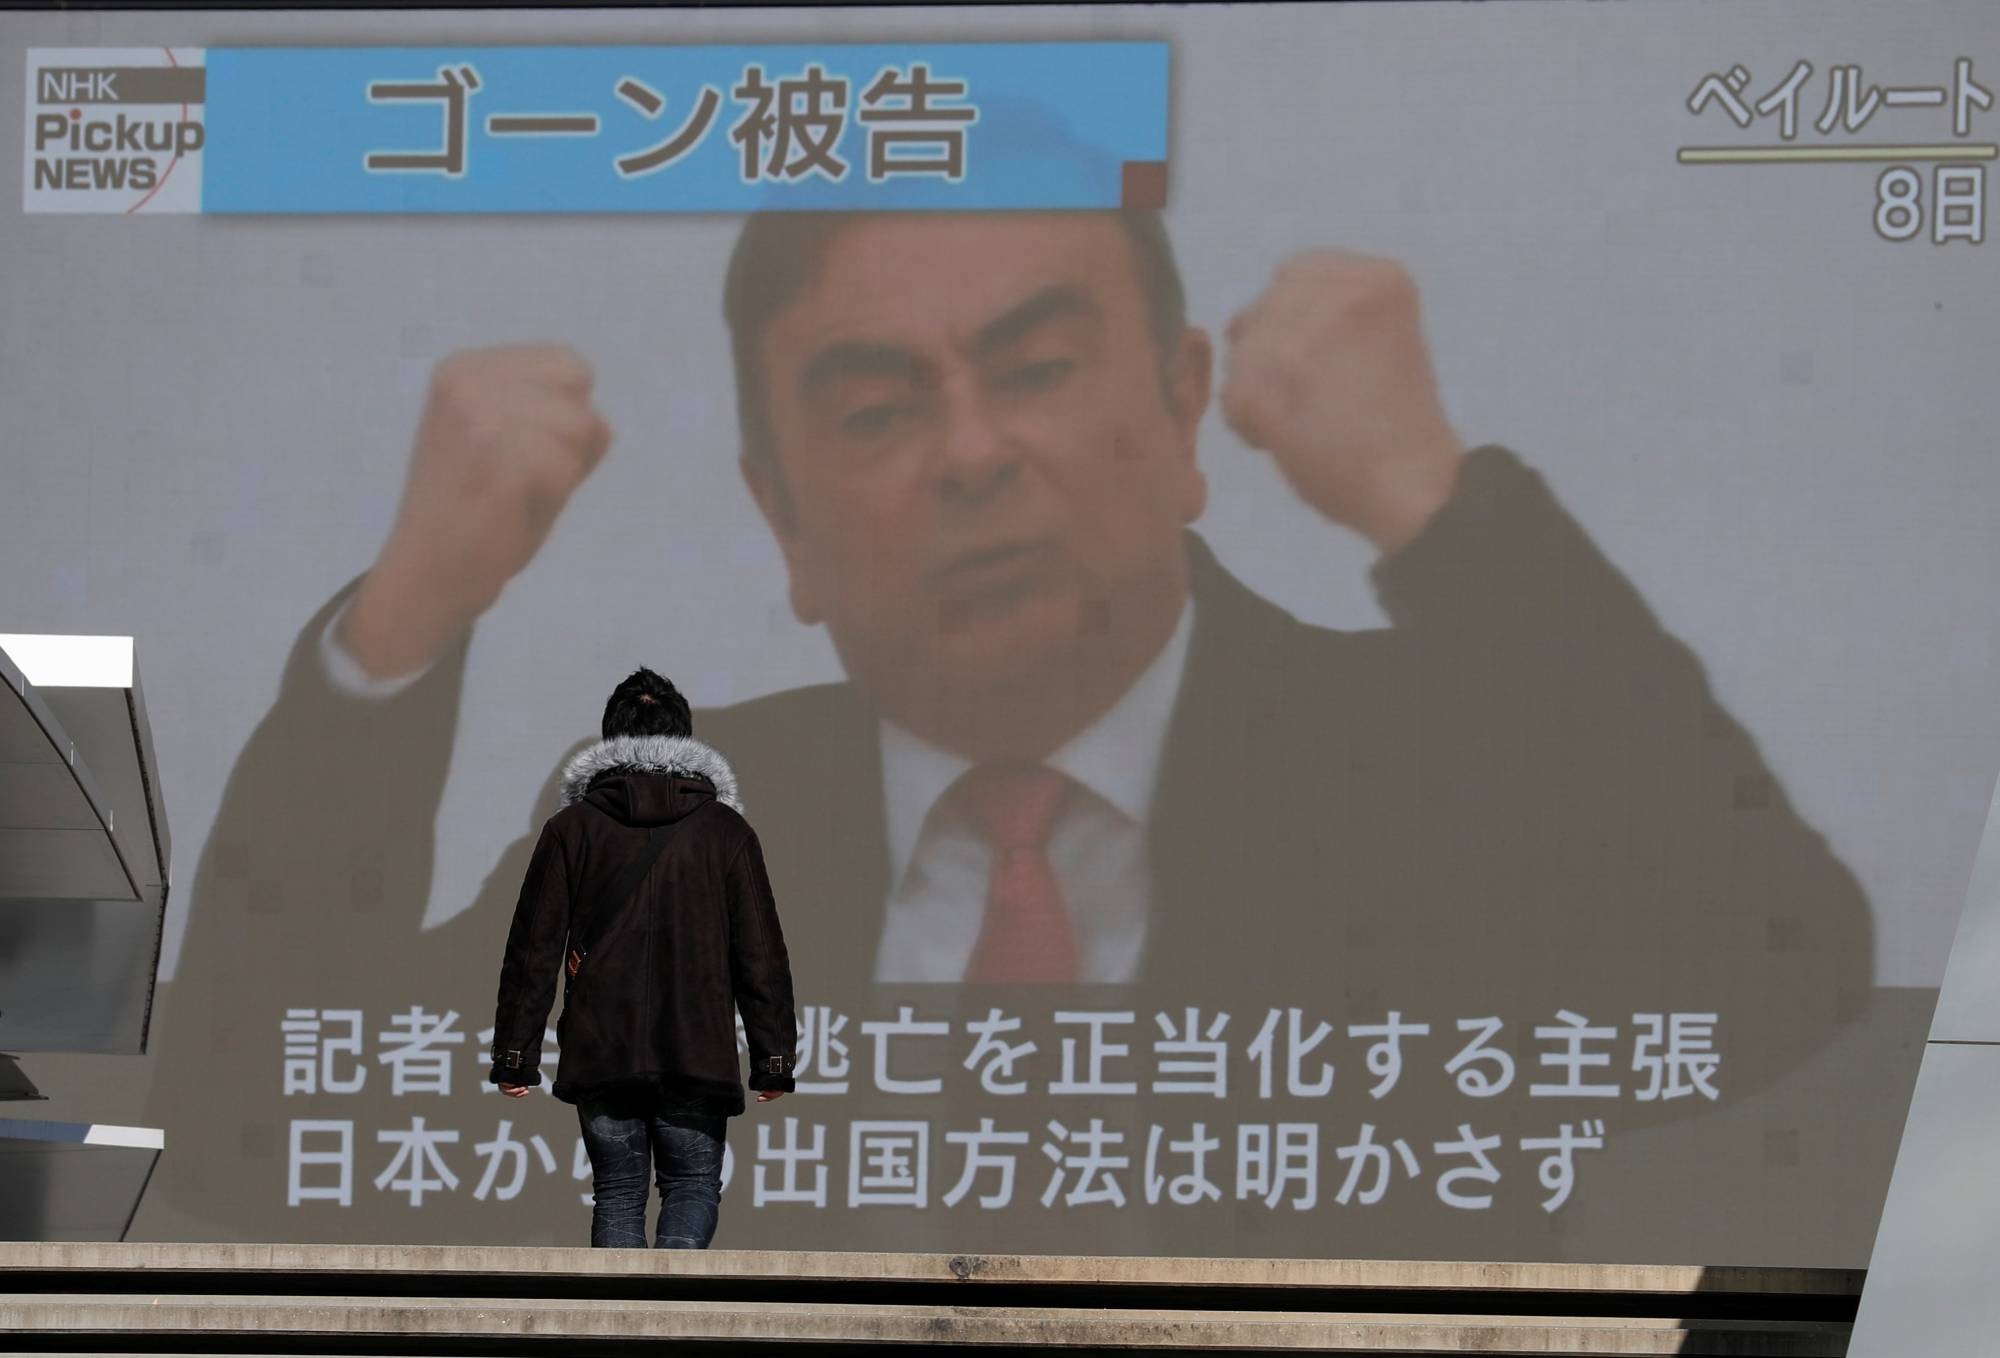 A passerby walks in front of a huge street monitor in Tokyo broadcasting a news conference by former Nissan chief Carlos Ghosn in Beirut on Jan. 9, 2020. | REUTERS